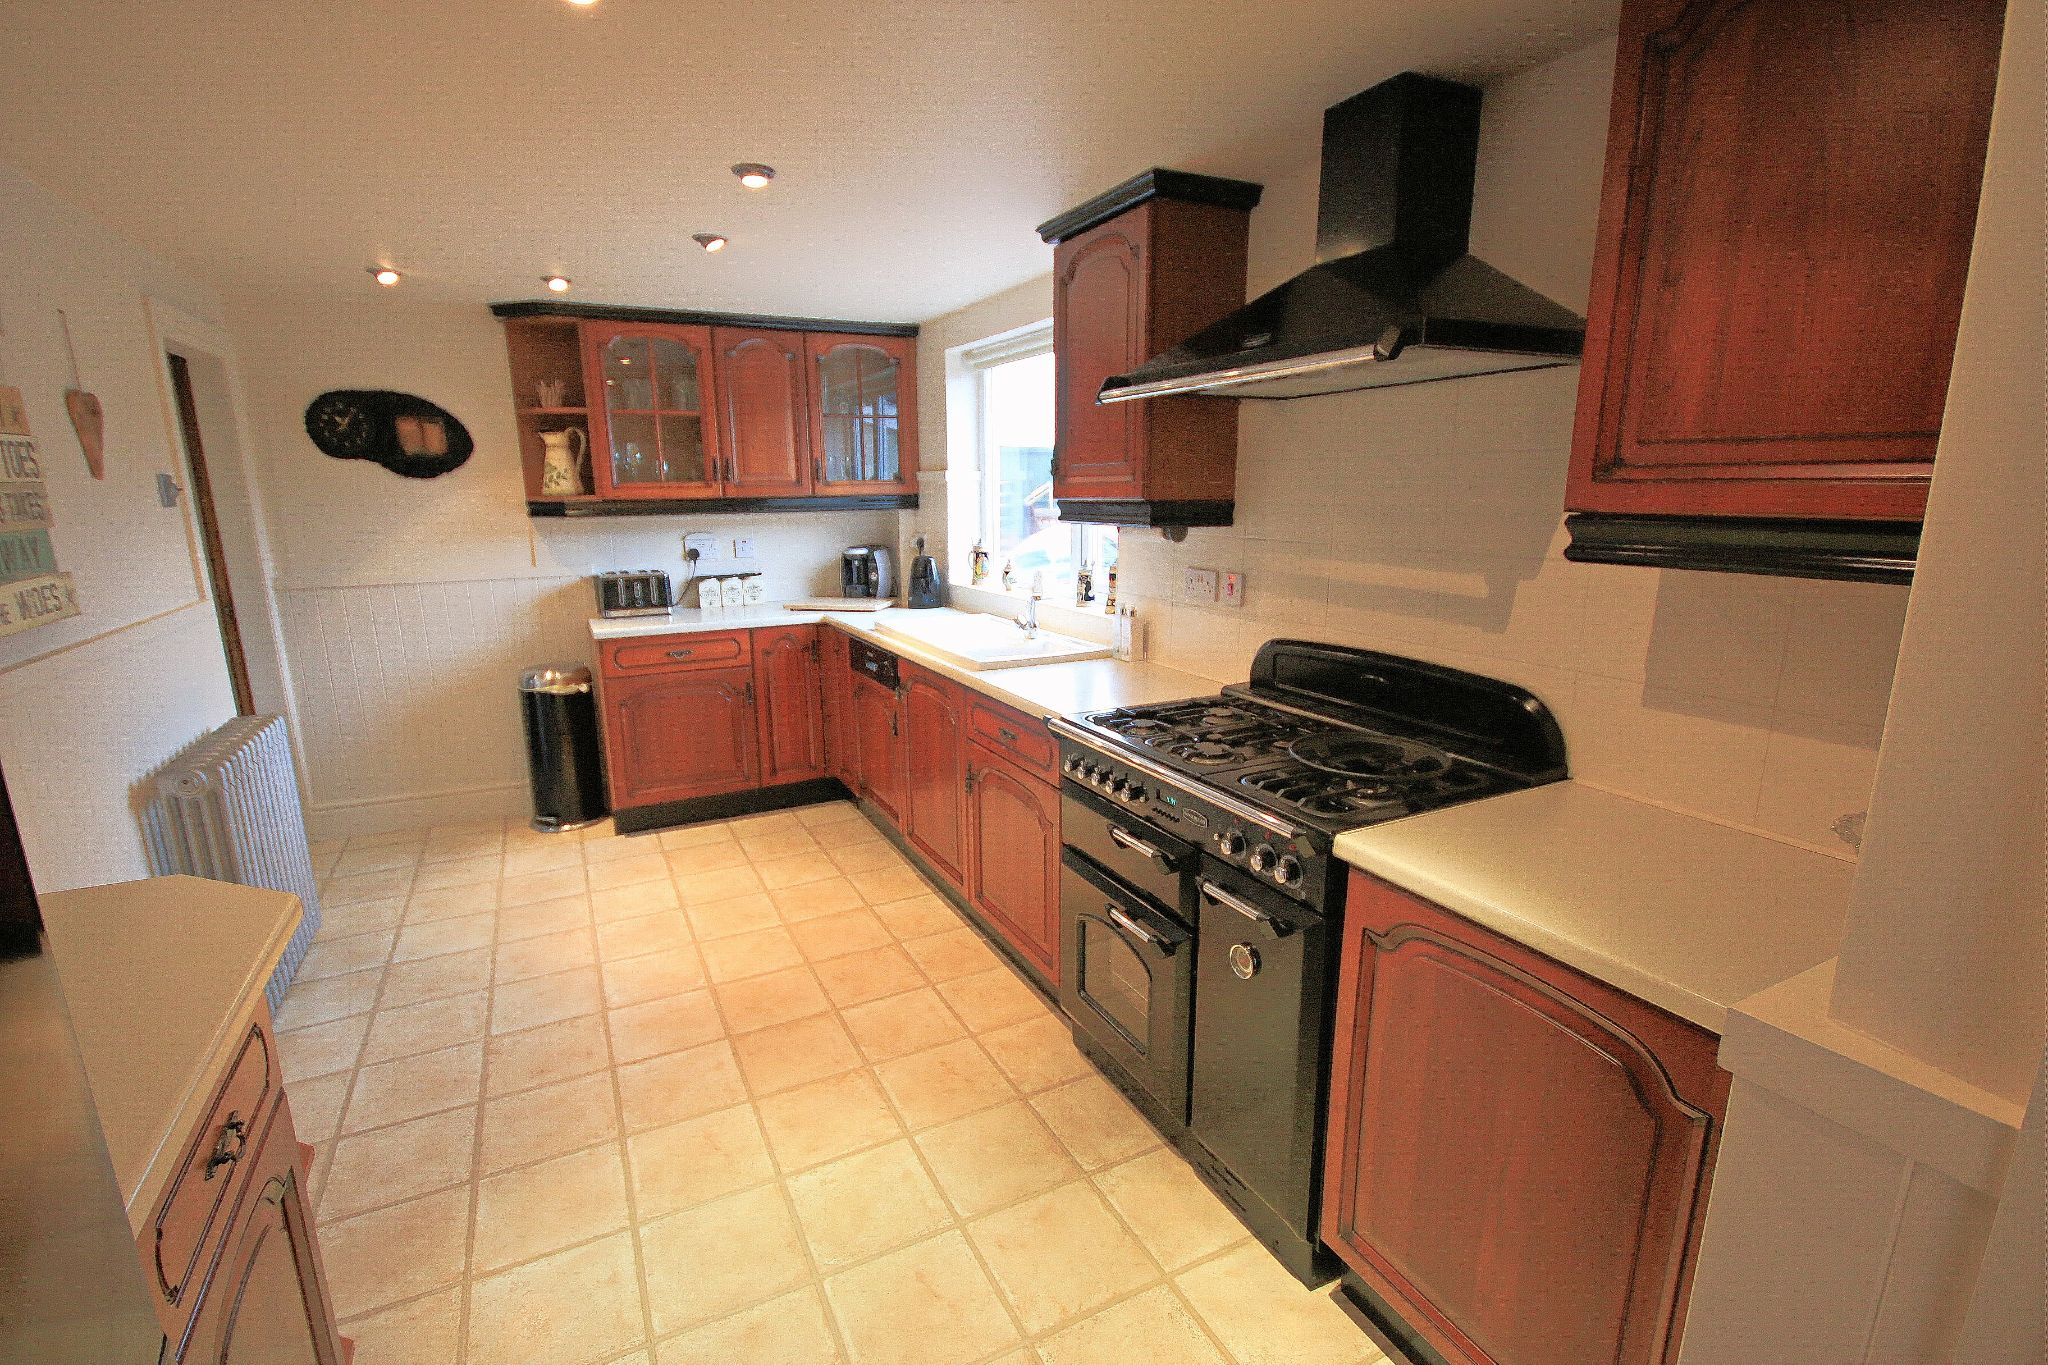 2 Bedroom Semi-detached House For Sale - Photograph 14